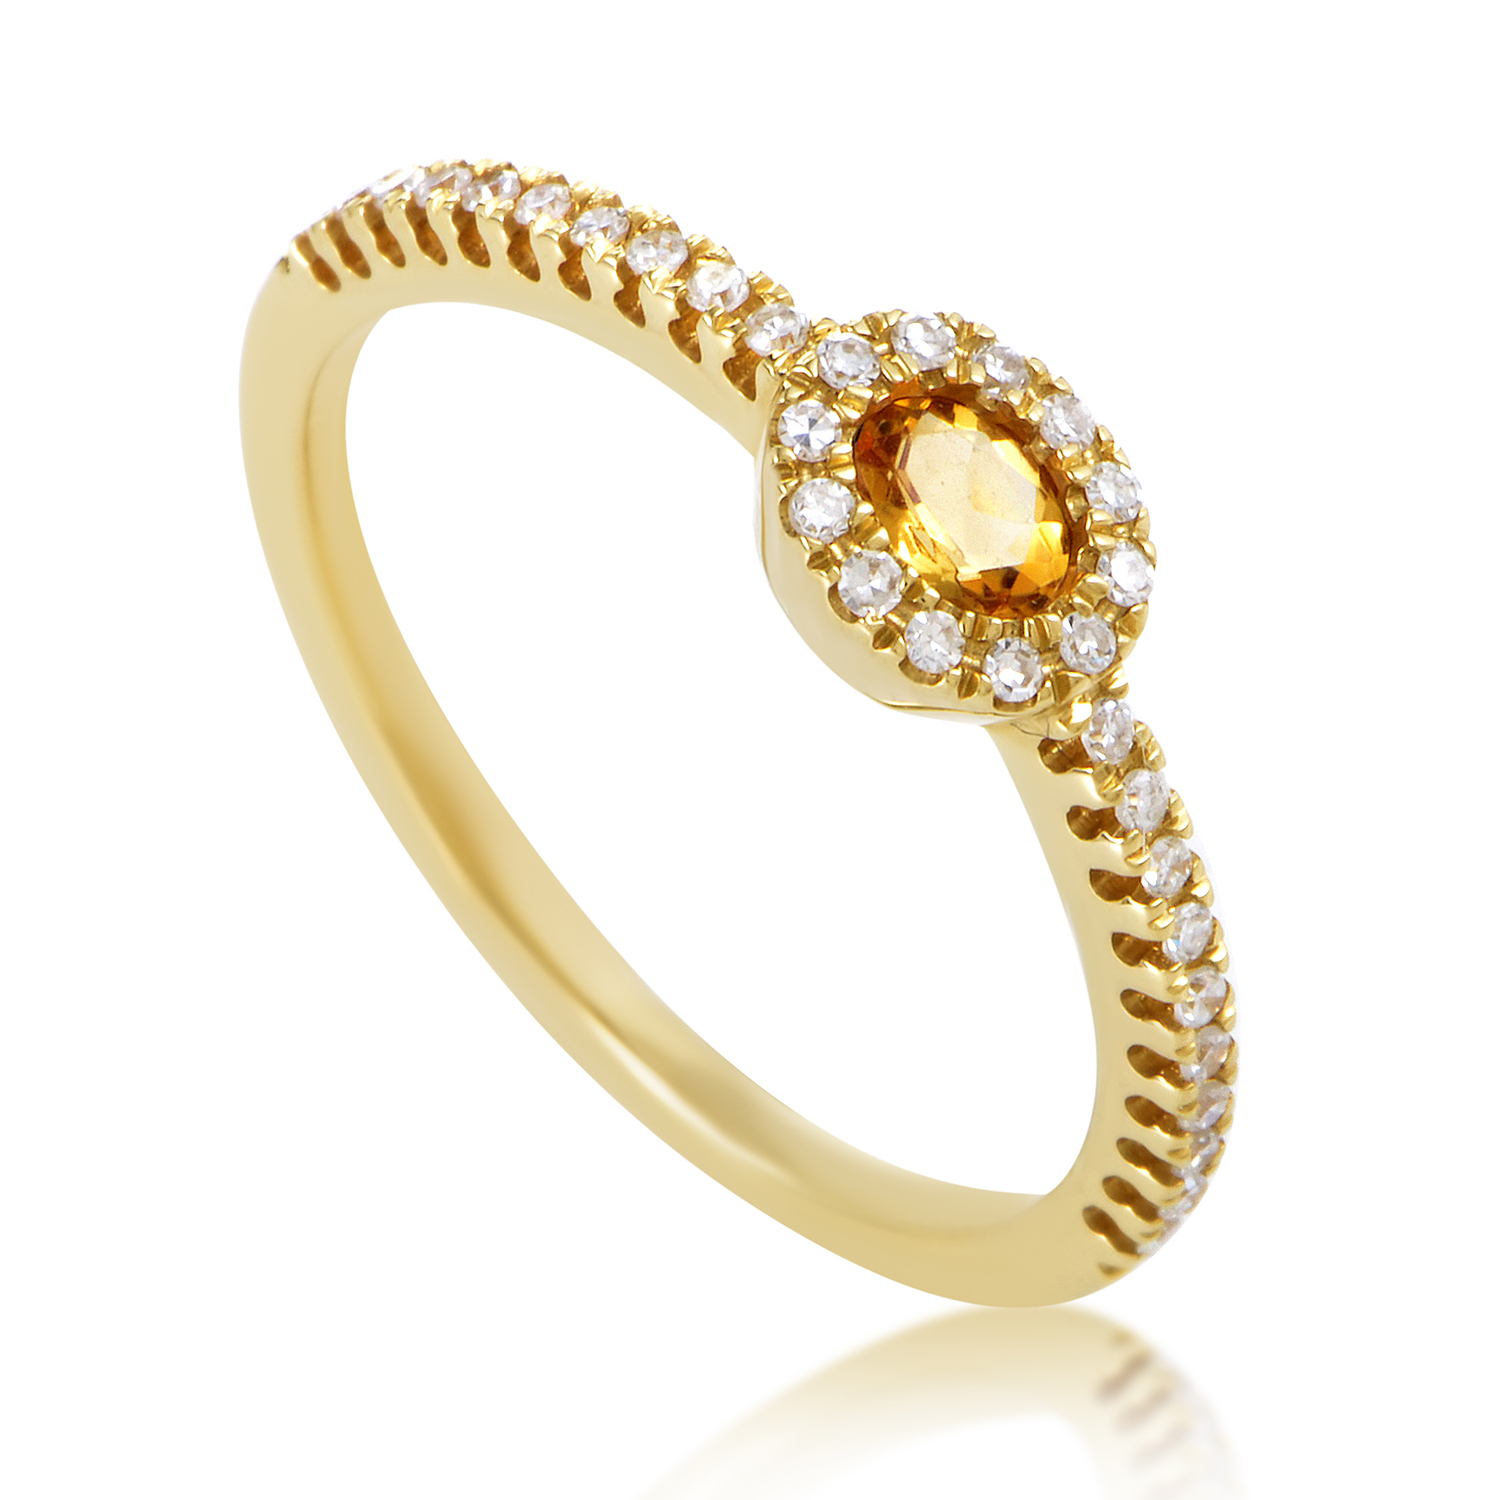 Women's 18K Yellow Gold Diamond & Citrine Ring KOTC59781ZZCIT